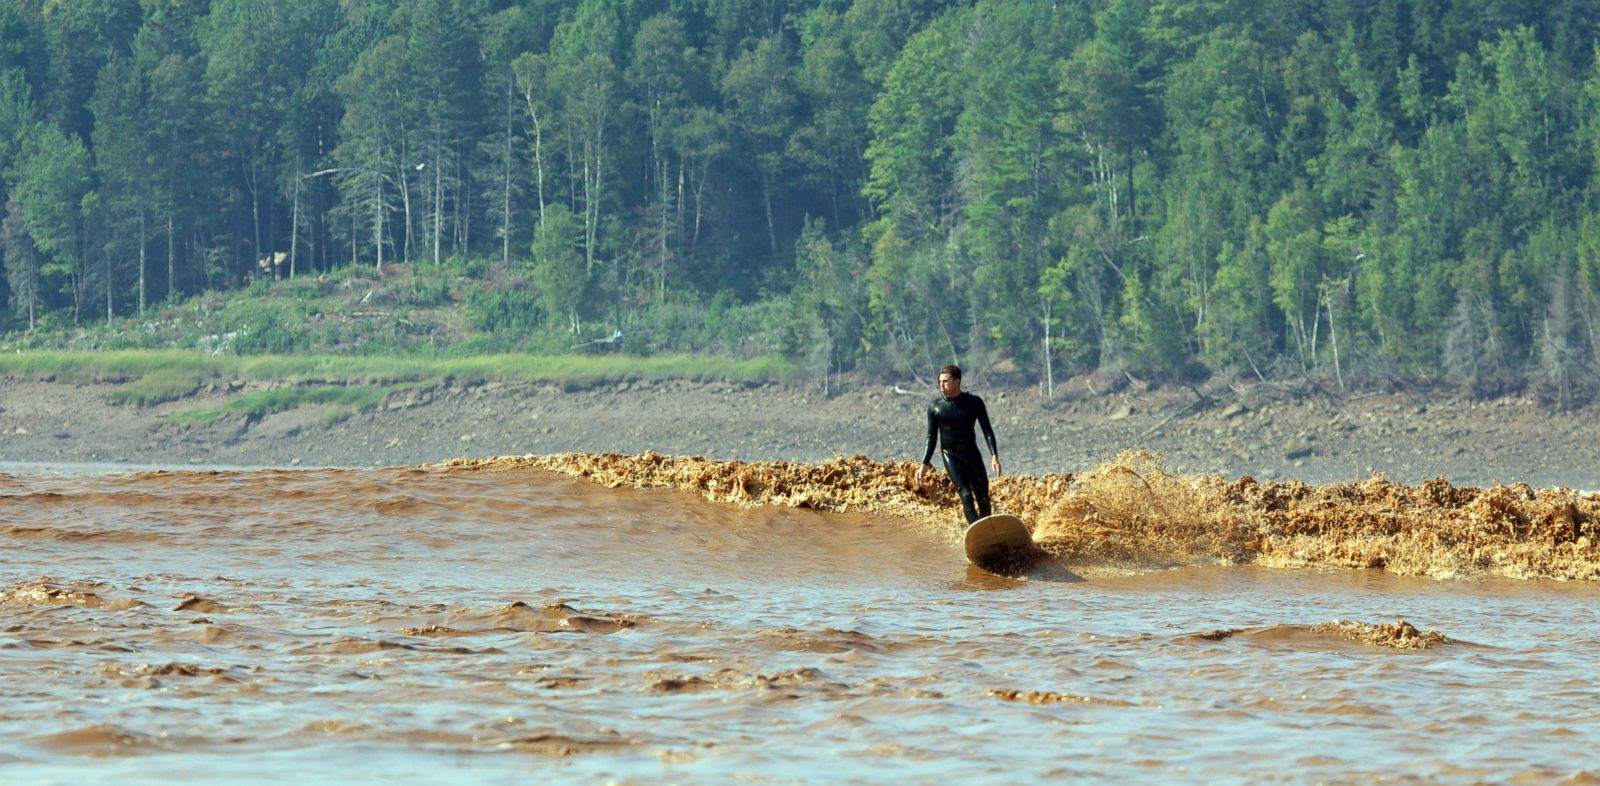 PHOTO: Colin Whitbread surfs a tidal bore on the Petitcodiac River in Moncton, New Brunswick.